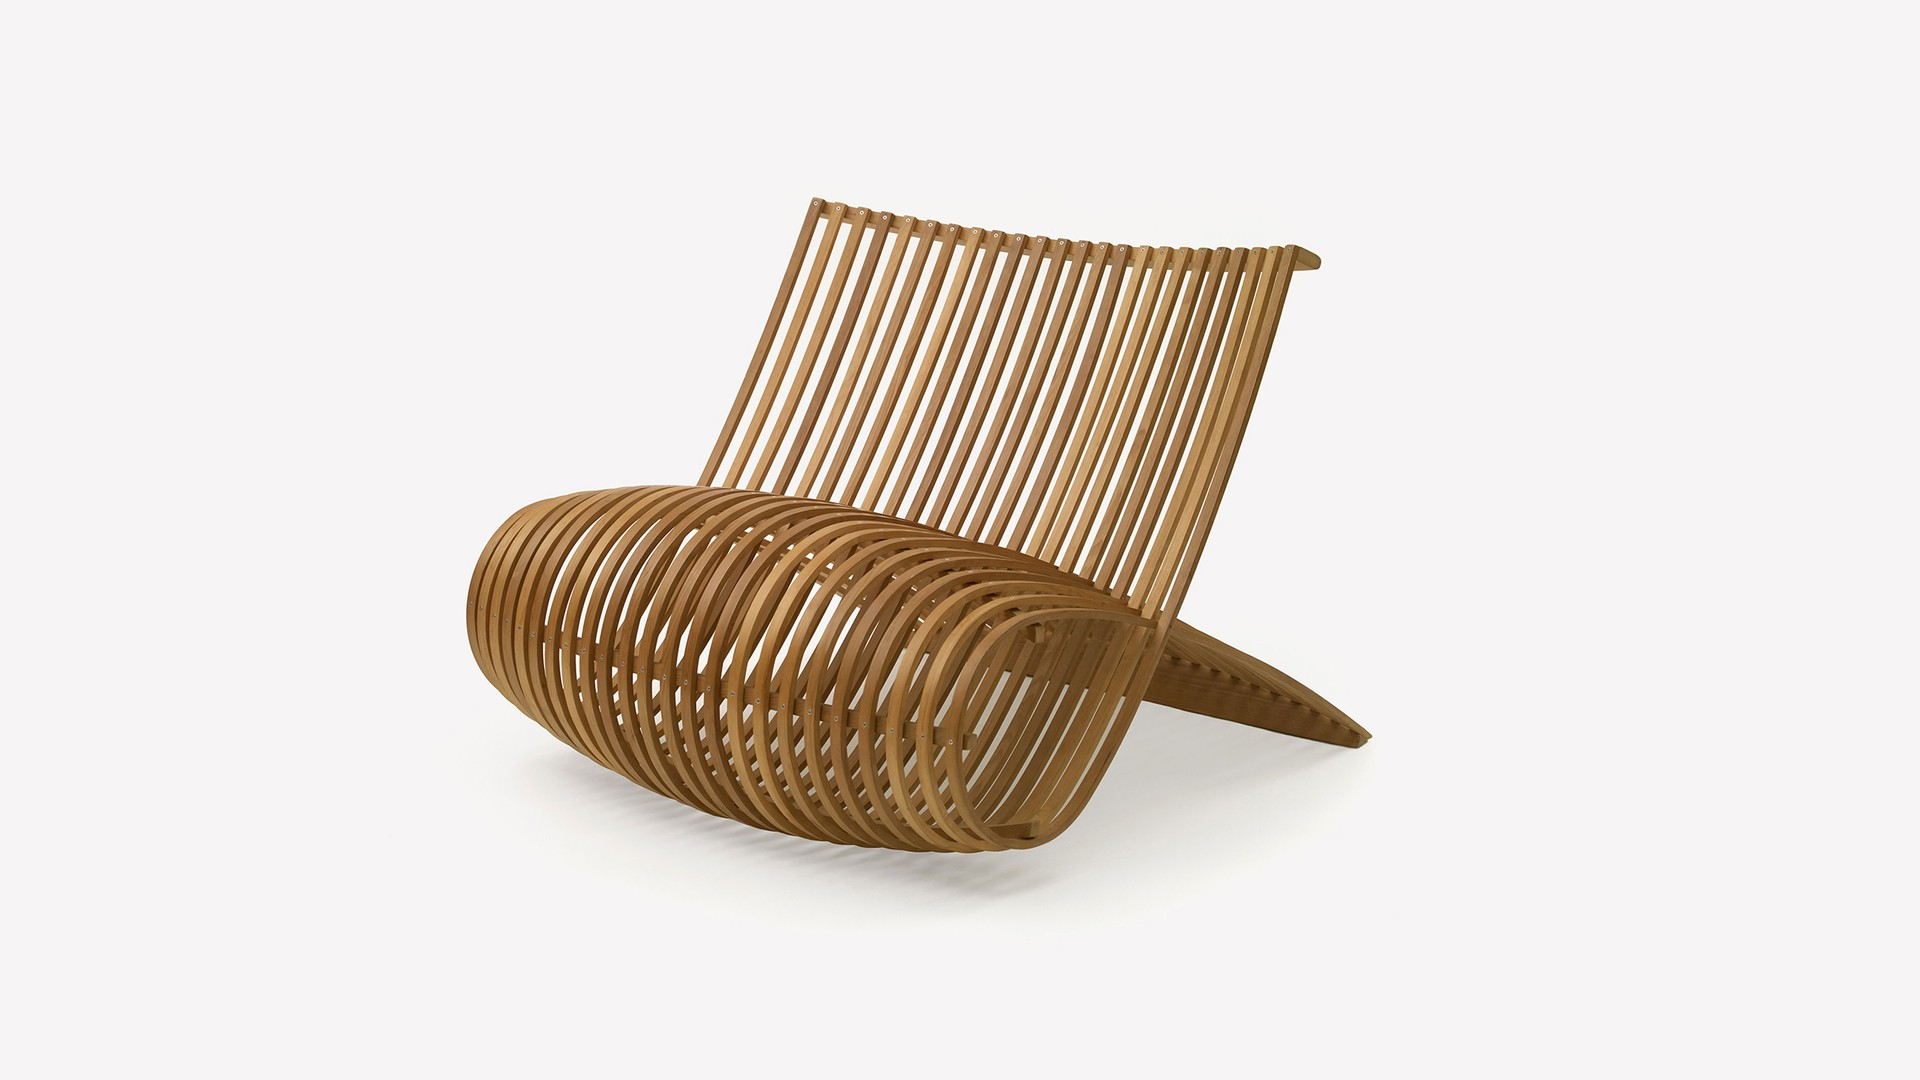 Wood Chair Marc Newson Ltd